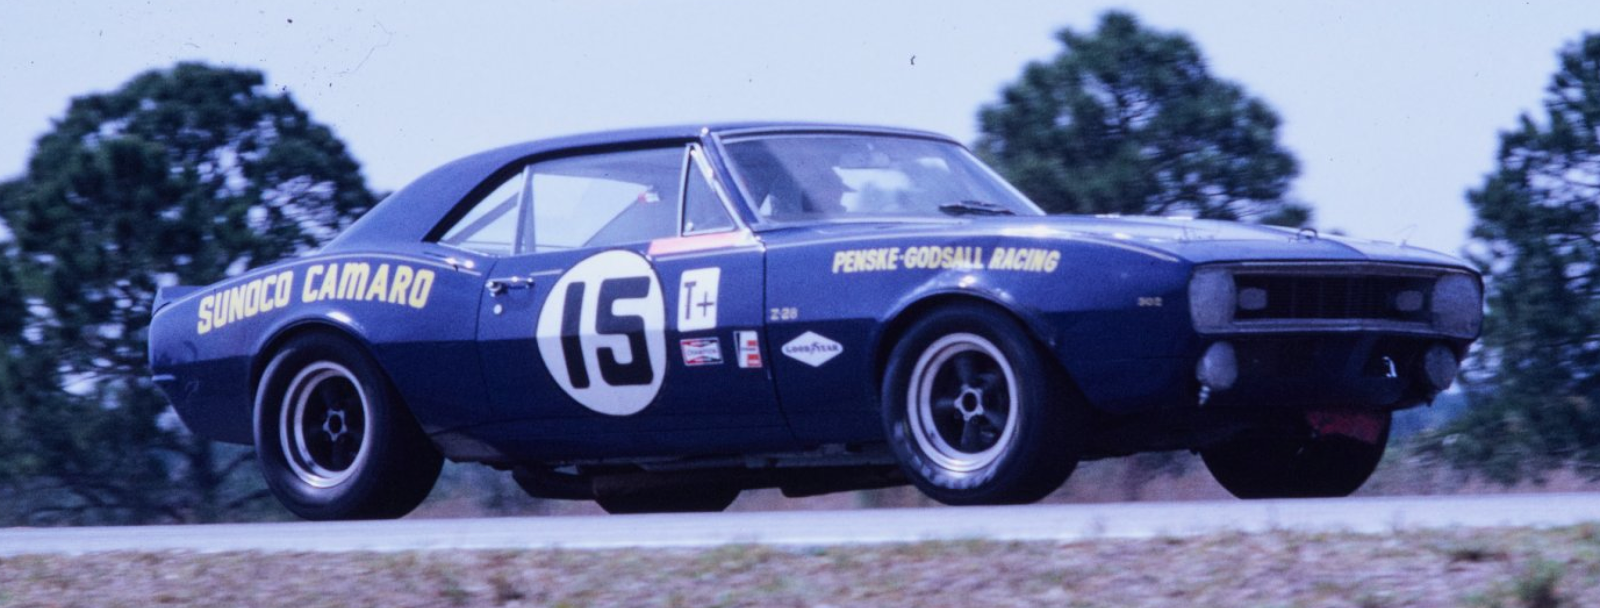 Pensky Camaro SCCA Trans-Am 12 Hours Of Sebring Trans Am 1968